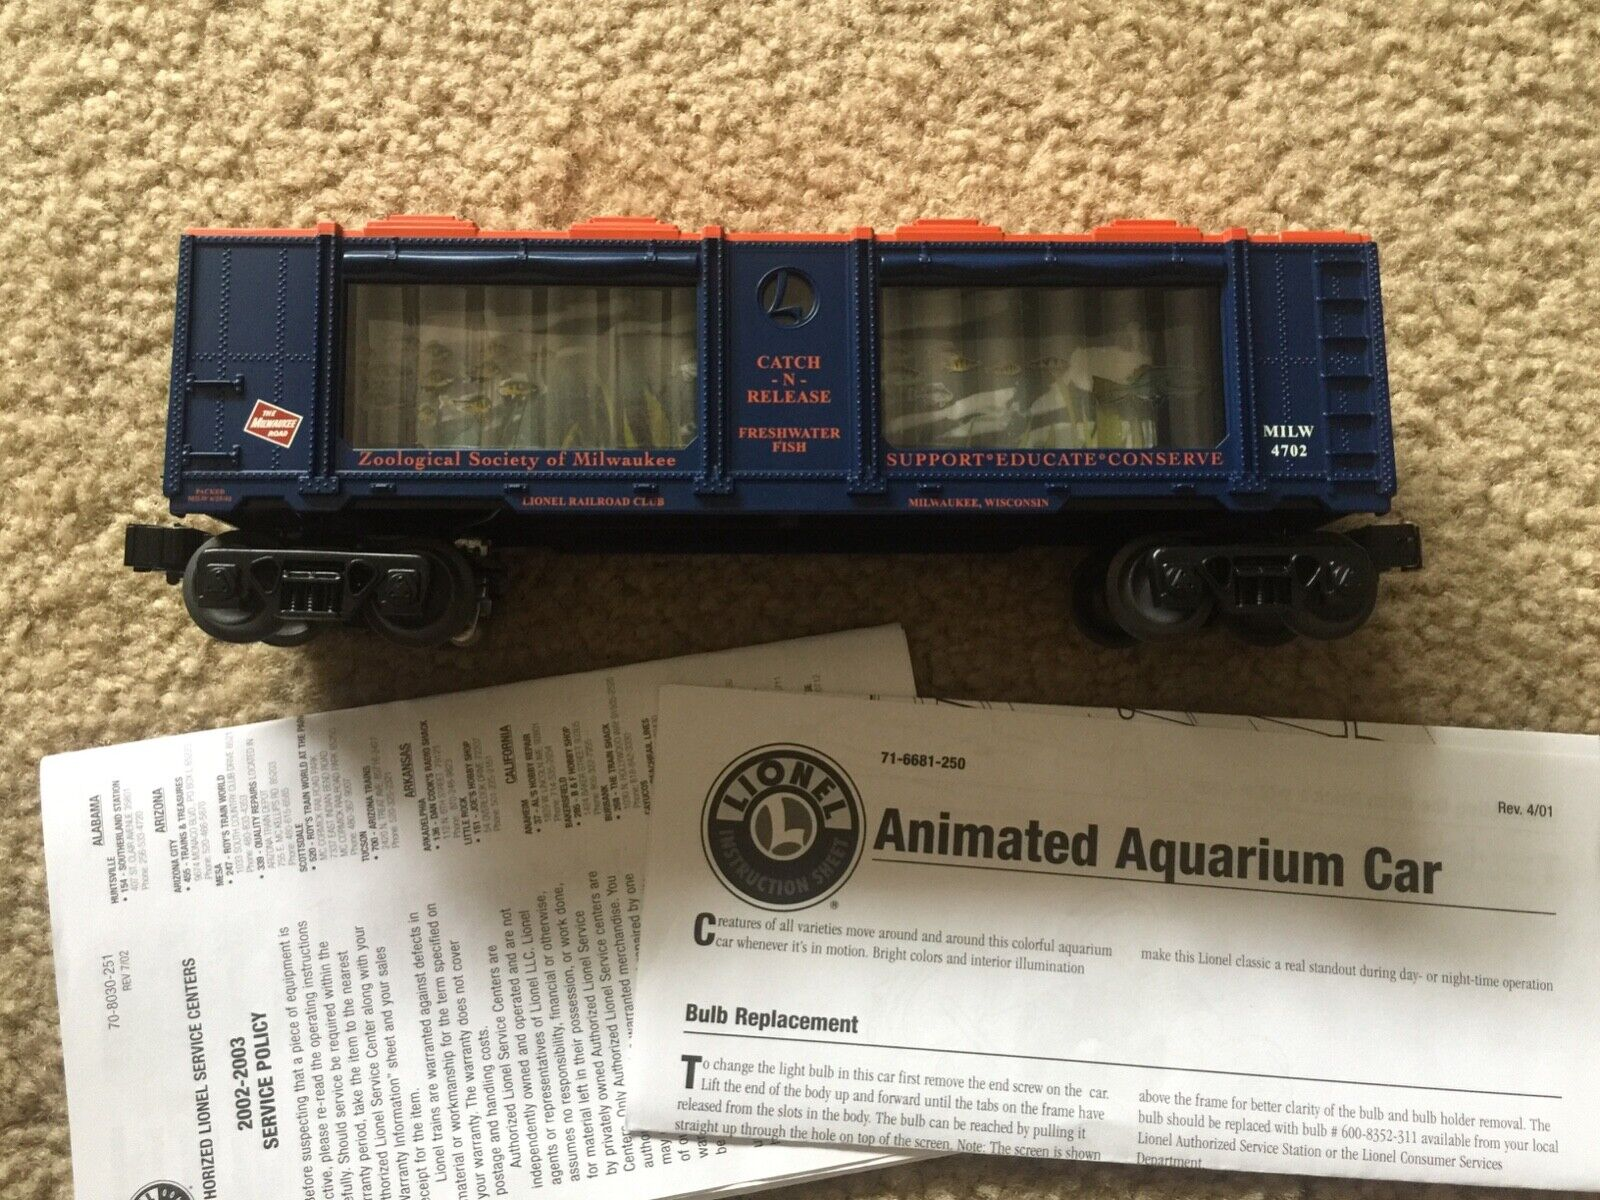 LIONEL MILWAUKEE LRRC CATCH & RELEASE FRESHWATER FISH MILWAUKEE ROAD 6-52278